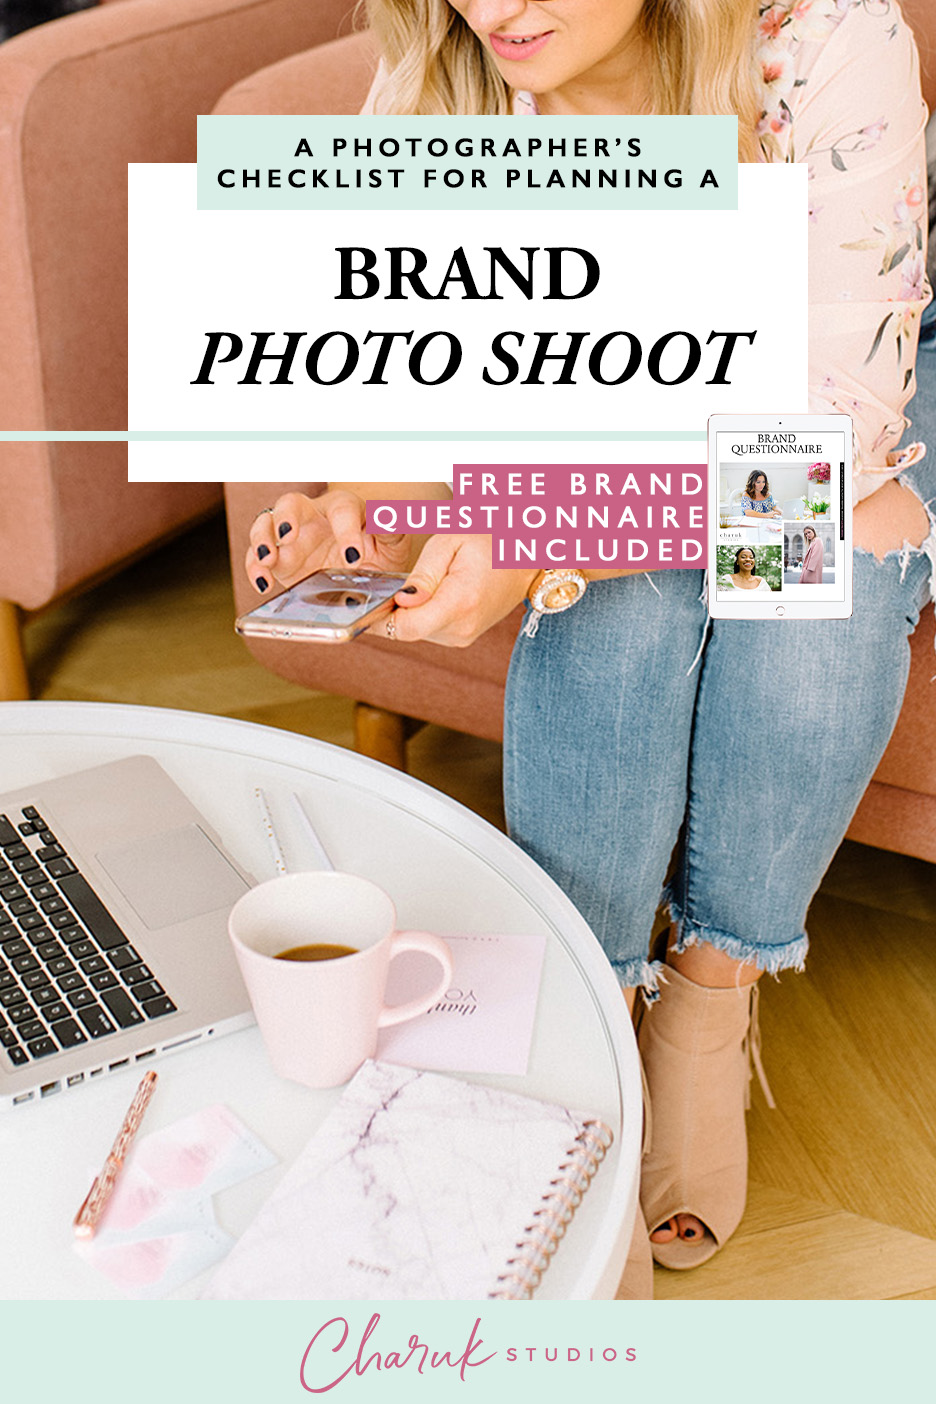 A Photographer's Checklist for Planning a Brand Photo Shoot by Charuk Studios